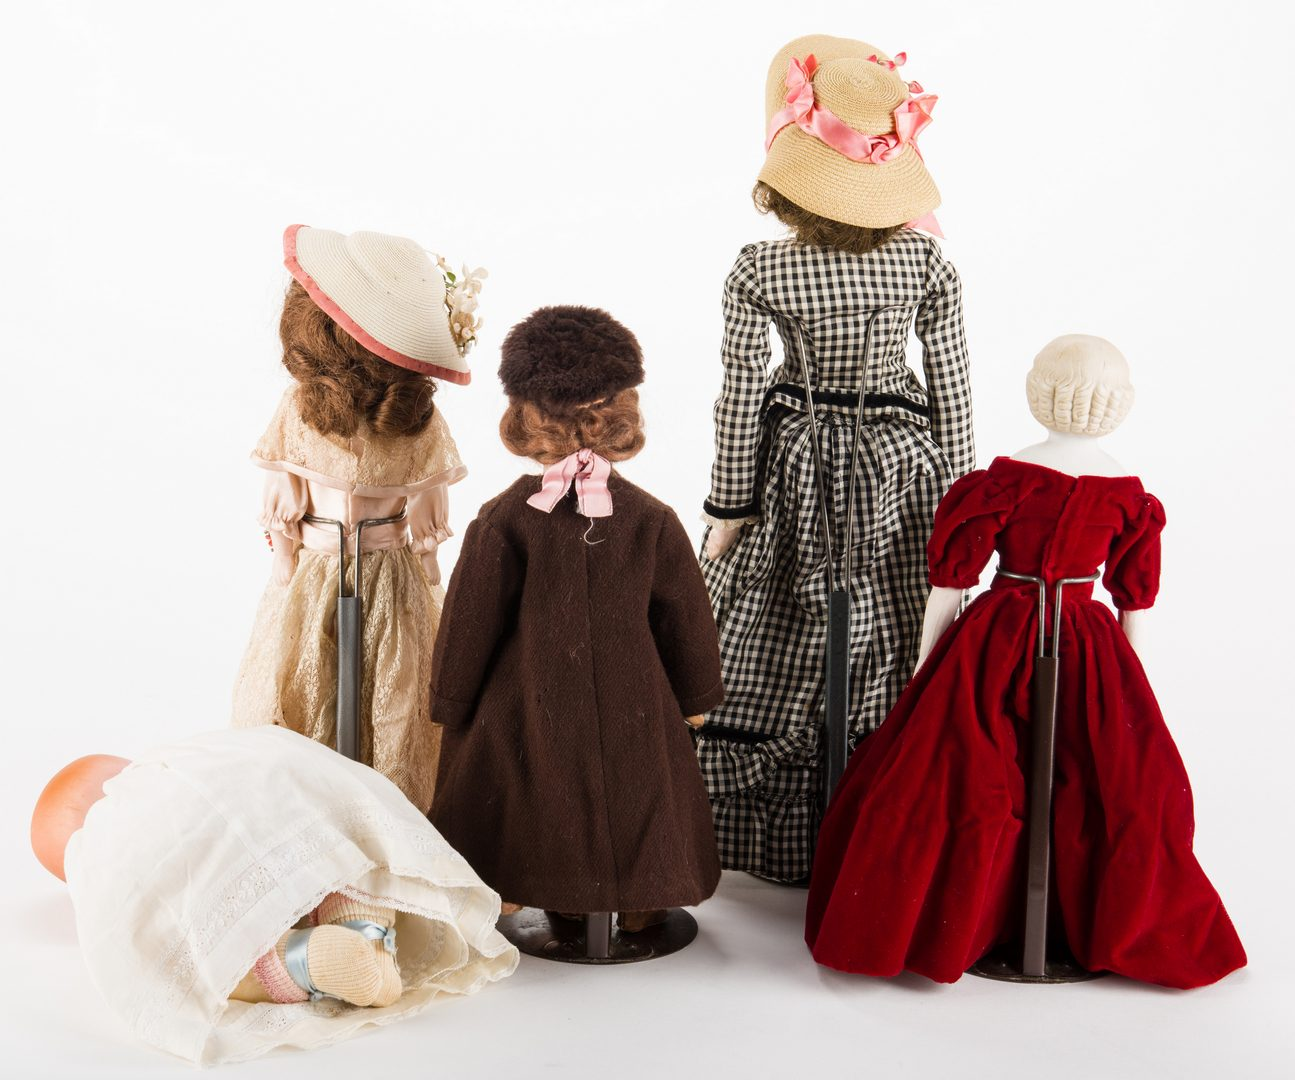 Lot 827: Group of 5 dolls